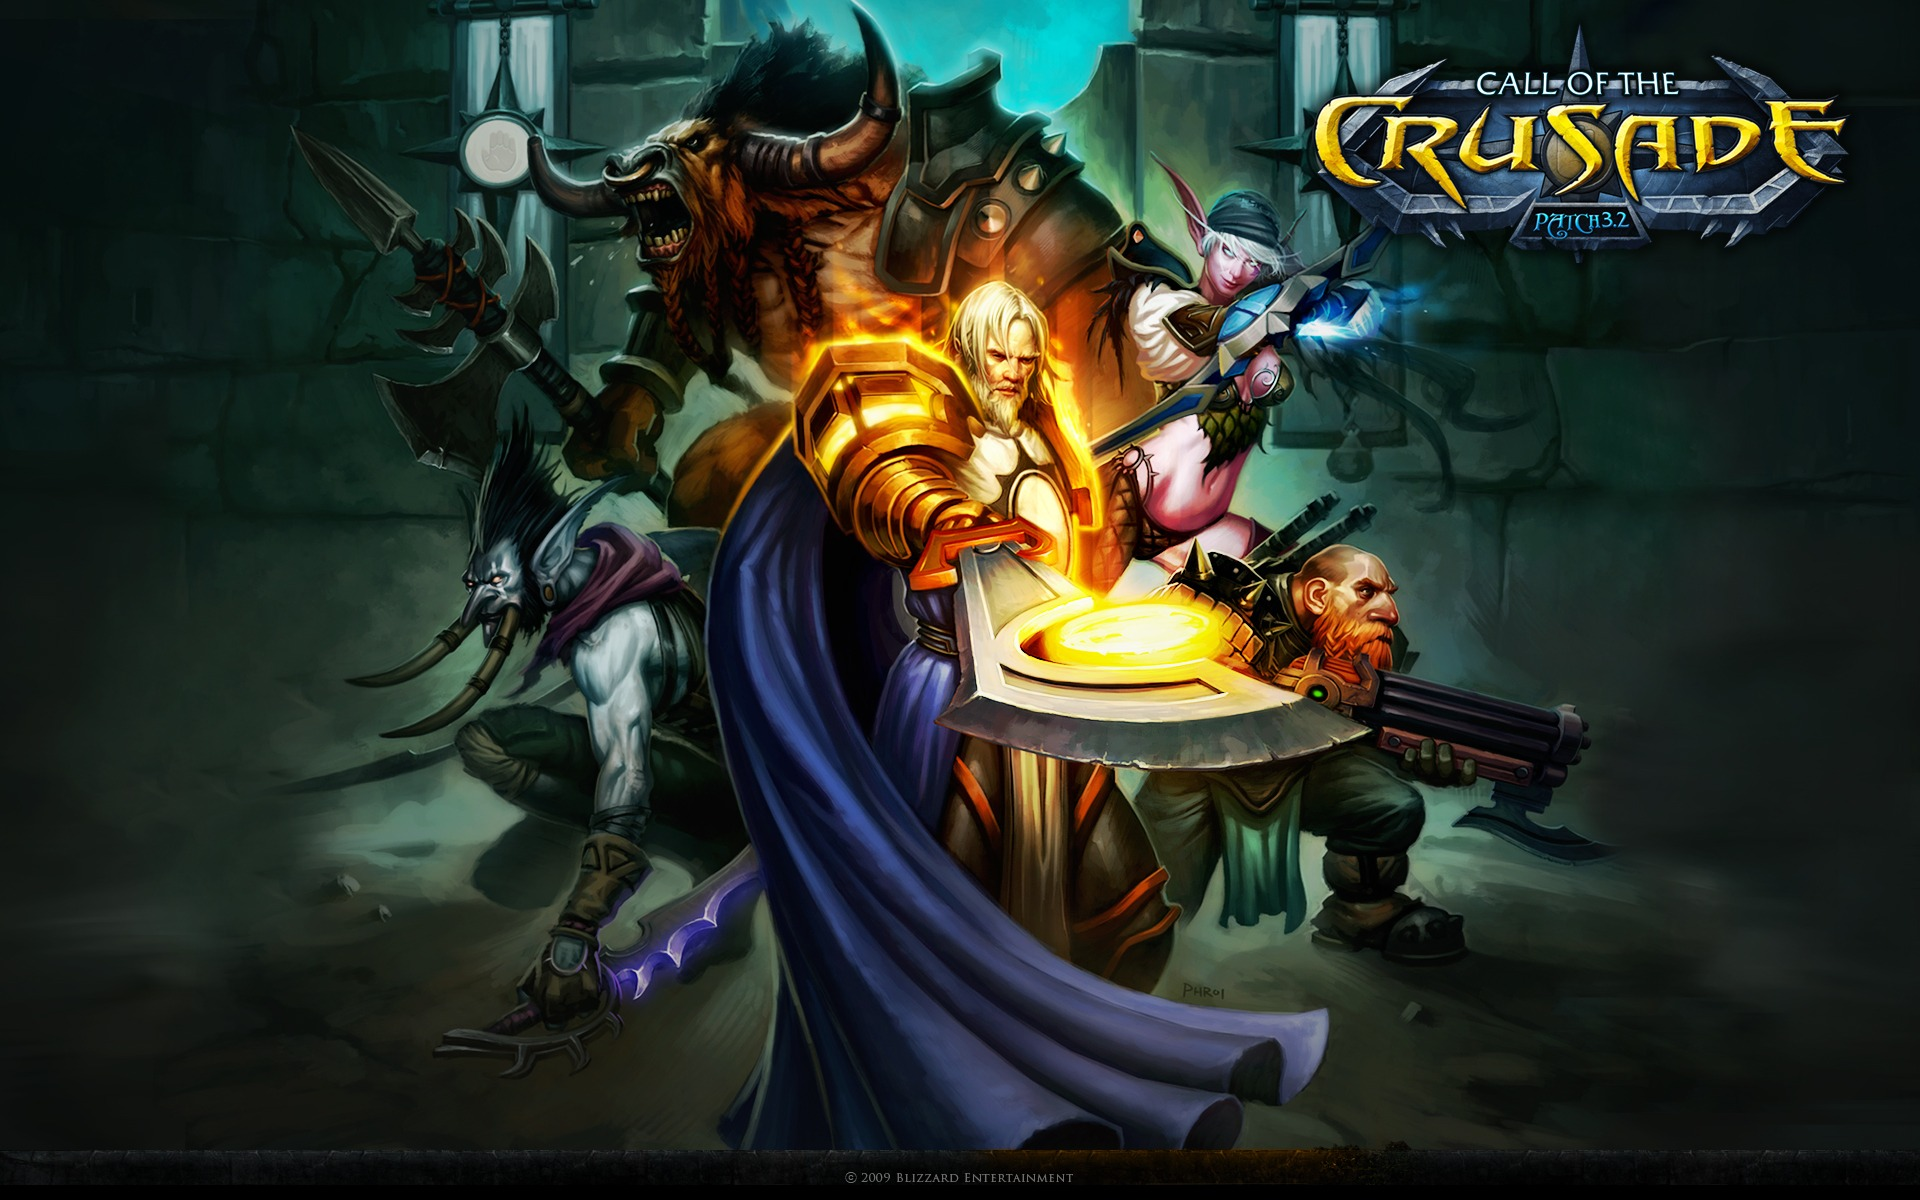 World Of Warcraft Games Widescreen Crusade Wow Downloadfiles Gamesfree HD wallpapers